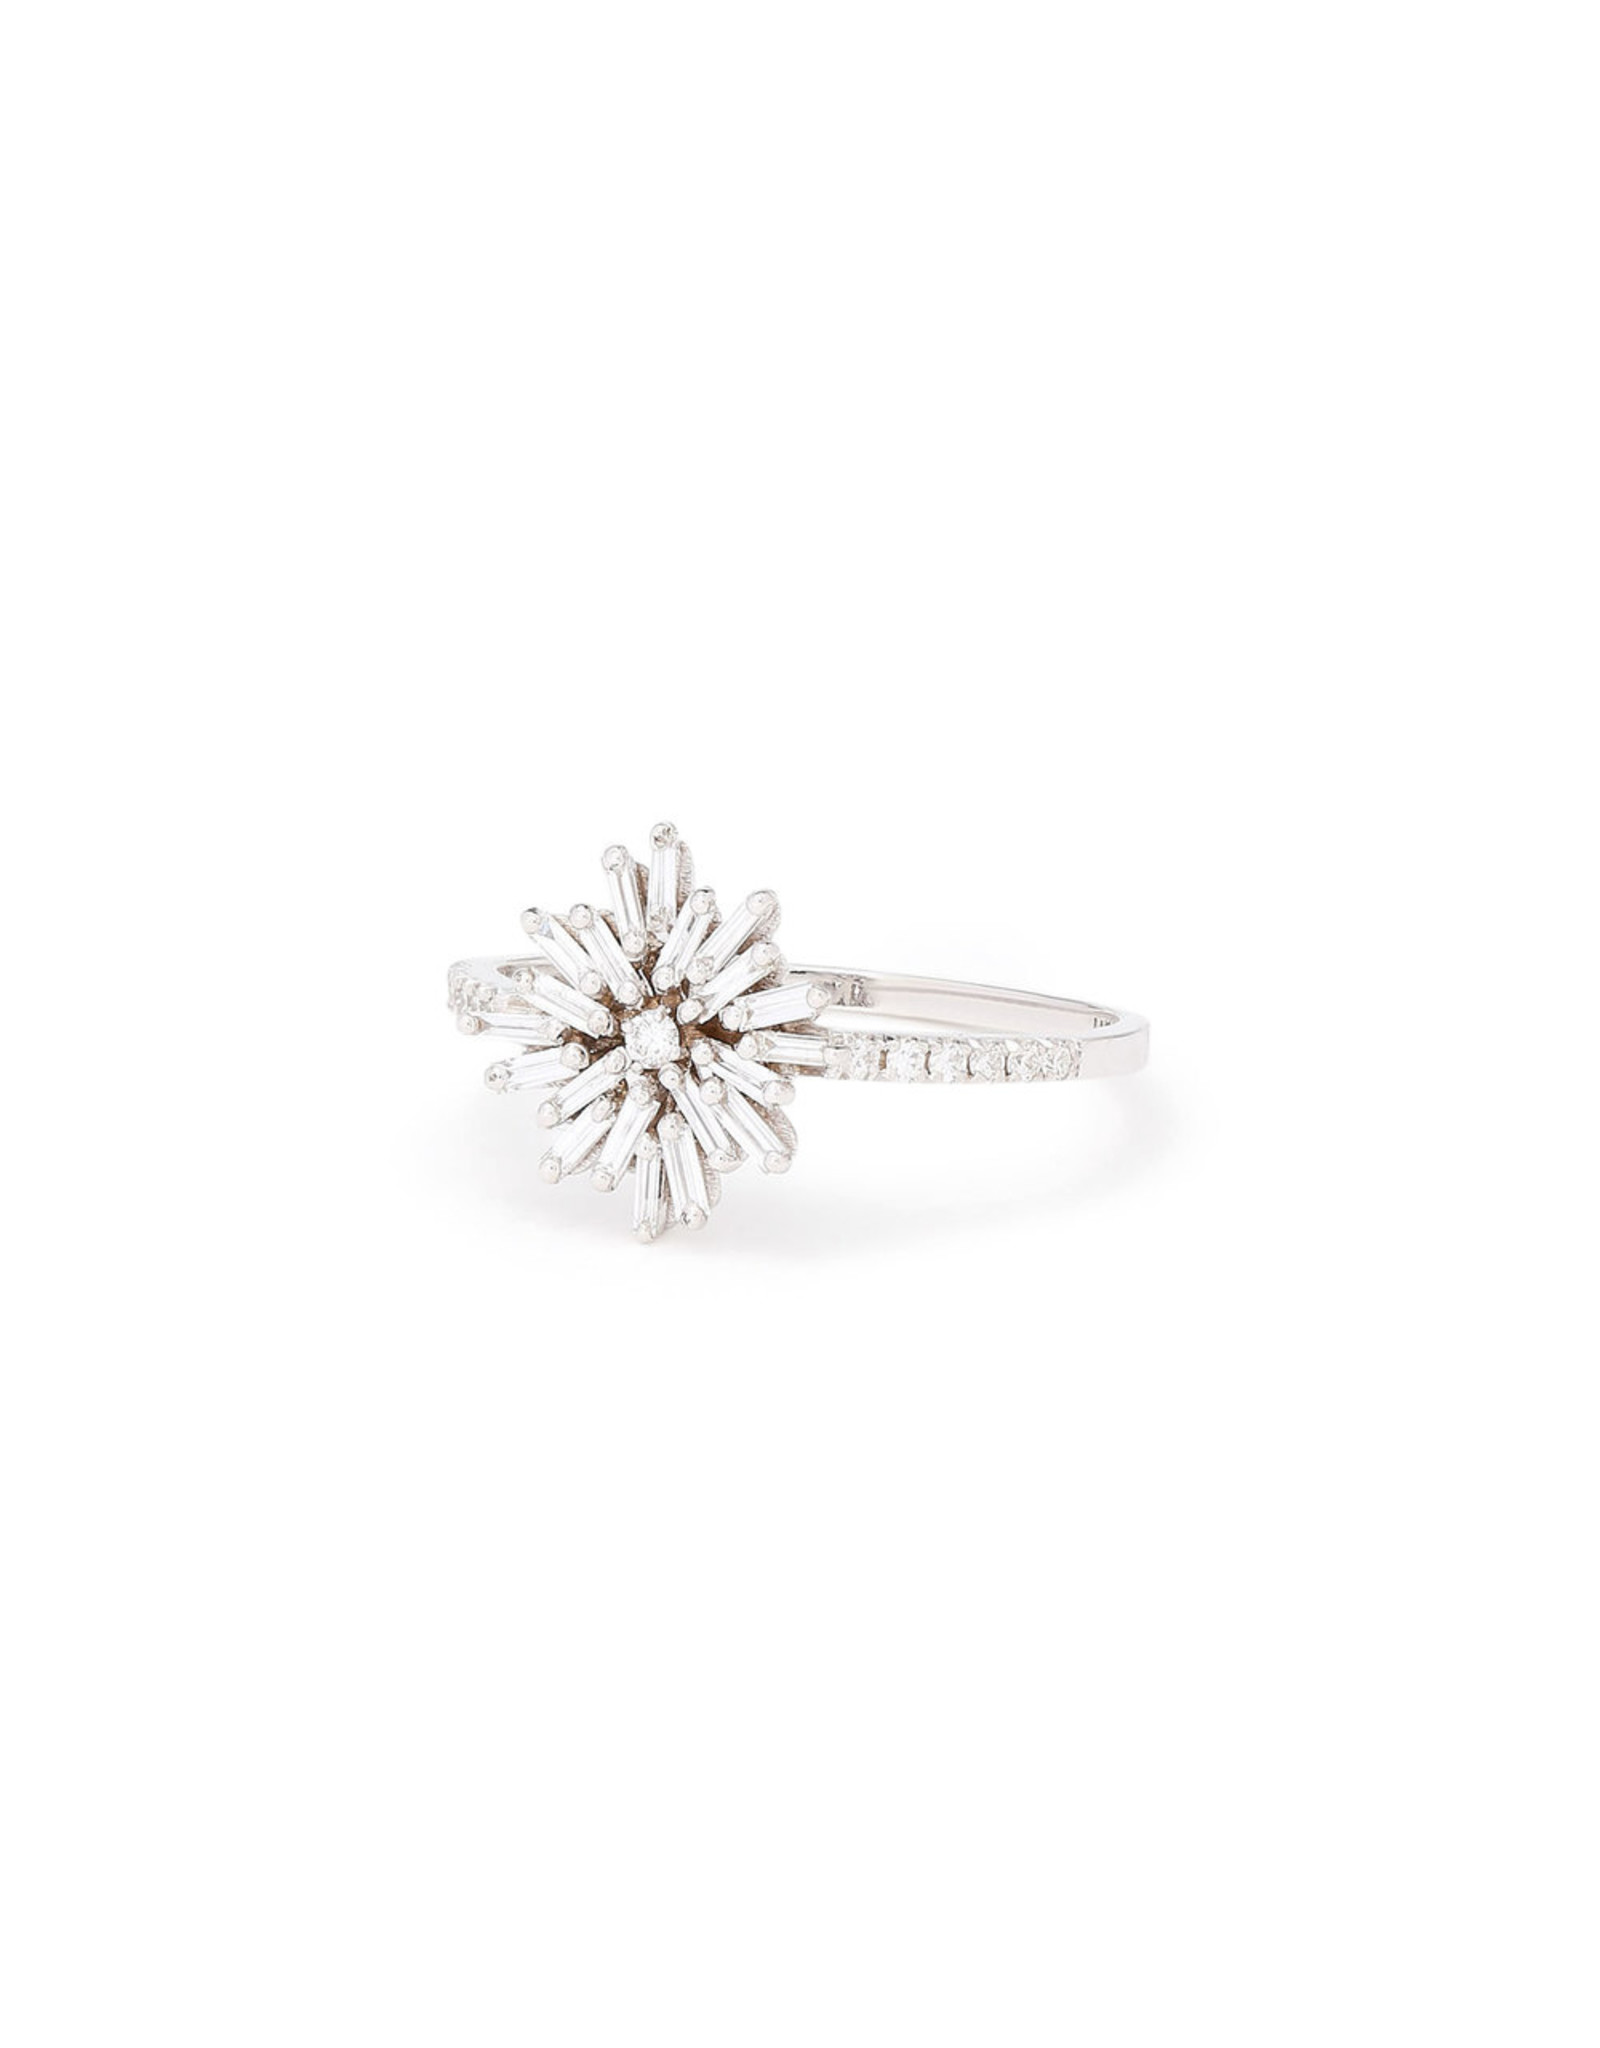 Suzanne Kalan Suzanne Kalan Small Diamond Firework Ring (Size: 6, Color: White Gold/White Diamond)